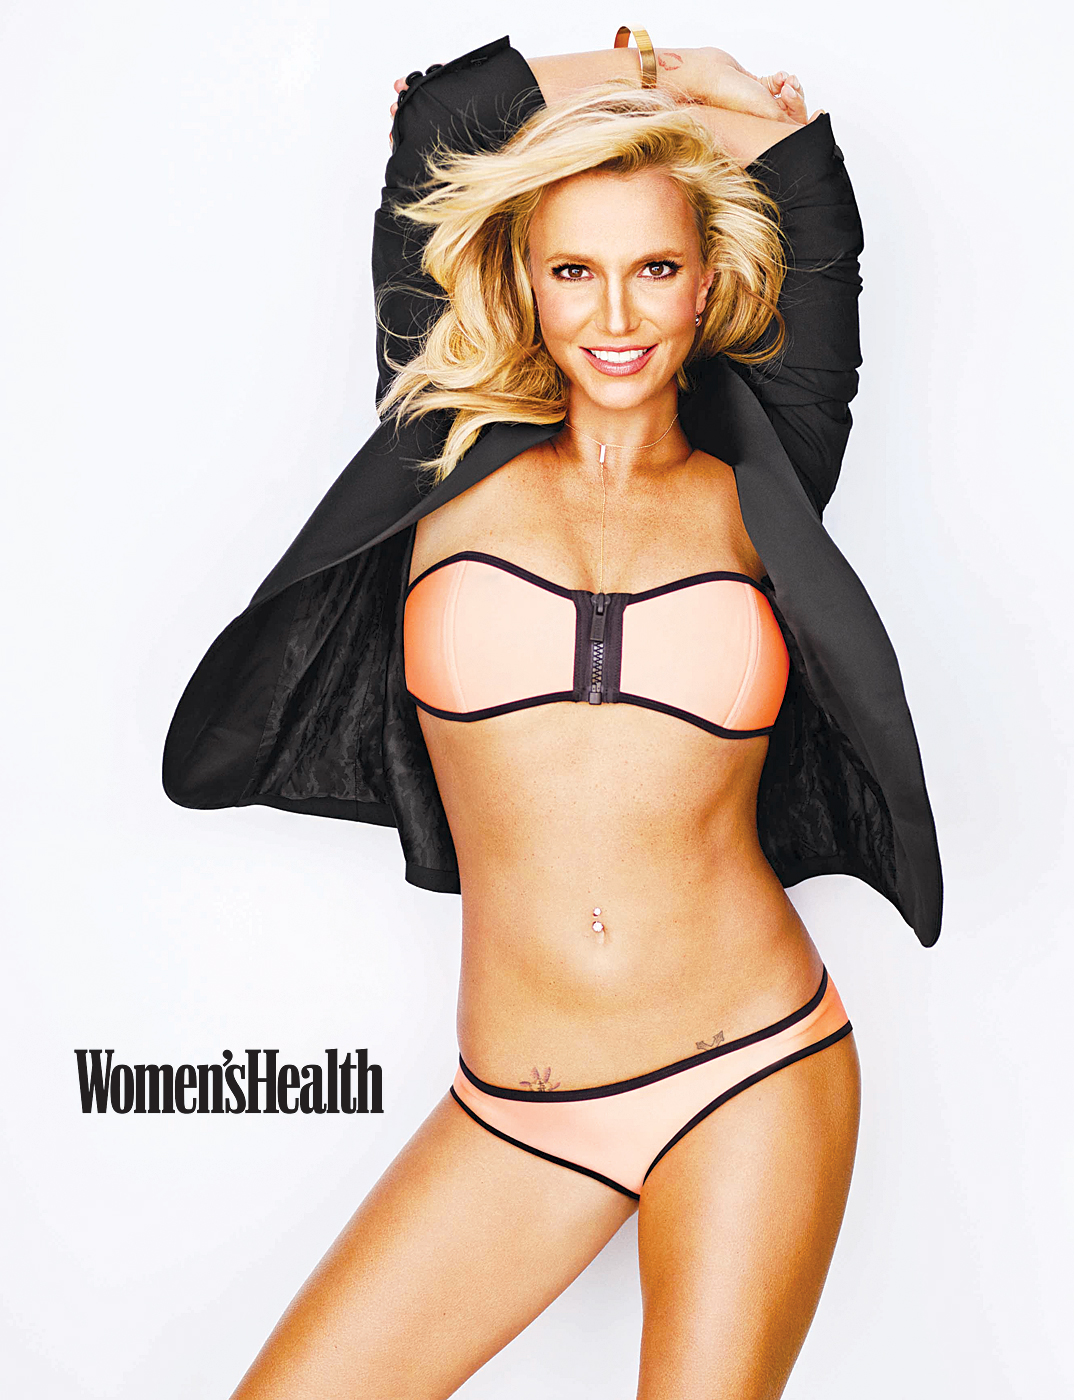 star24-tv-britney-spears-women's-health-couverture-magazine (5)